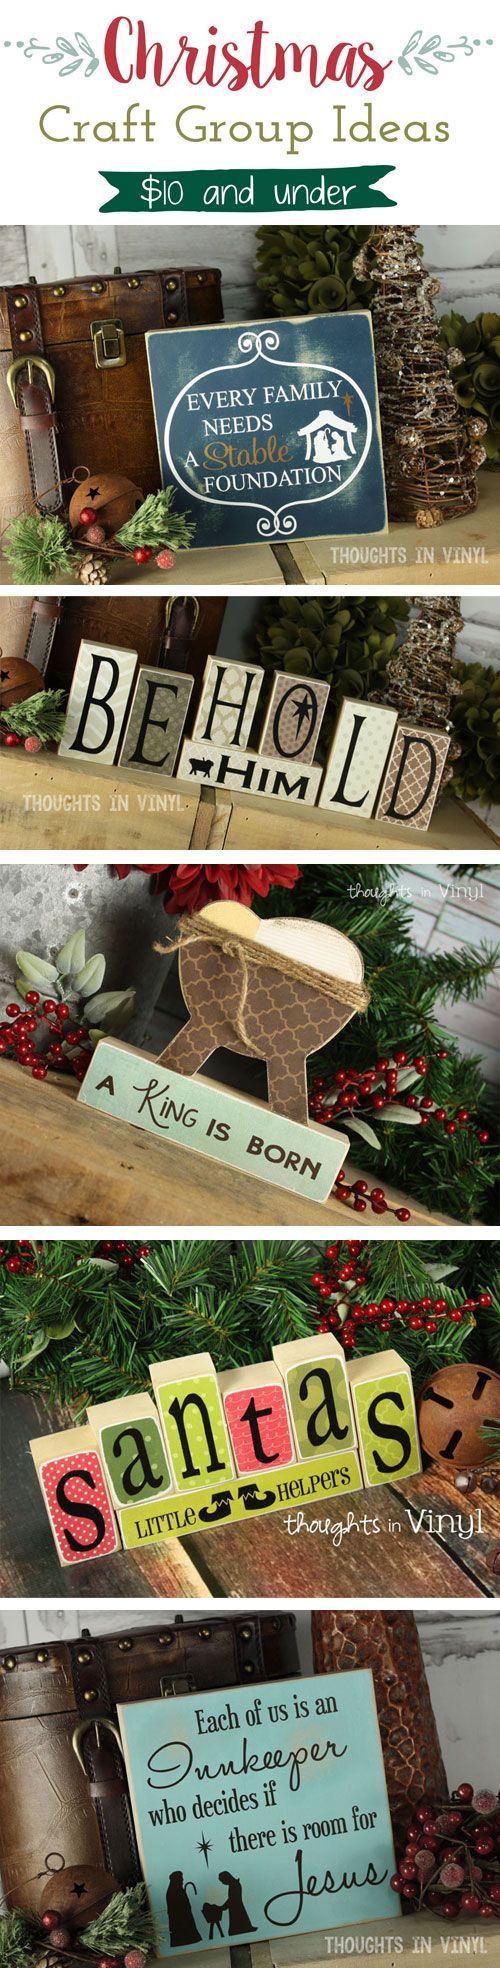 No christmas decorations until after thanksgiving - Christmas Wood Crafts Girls Night Out Or Craft Group Ideas So Cute